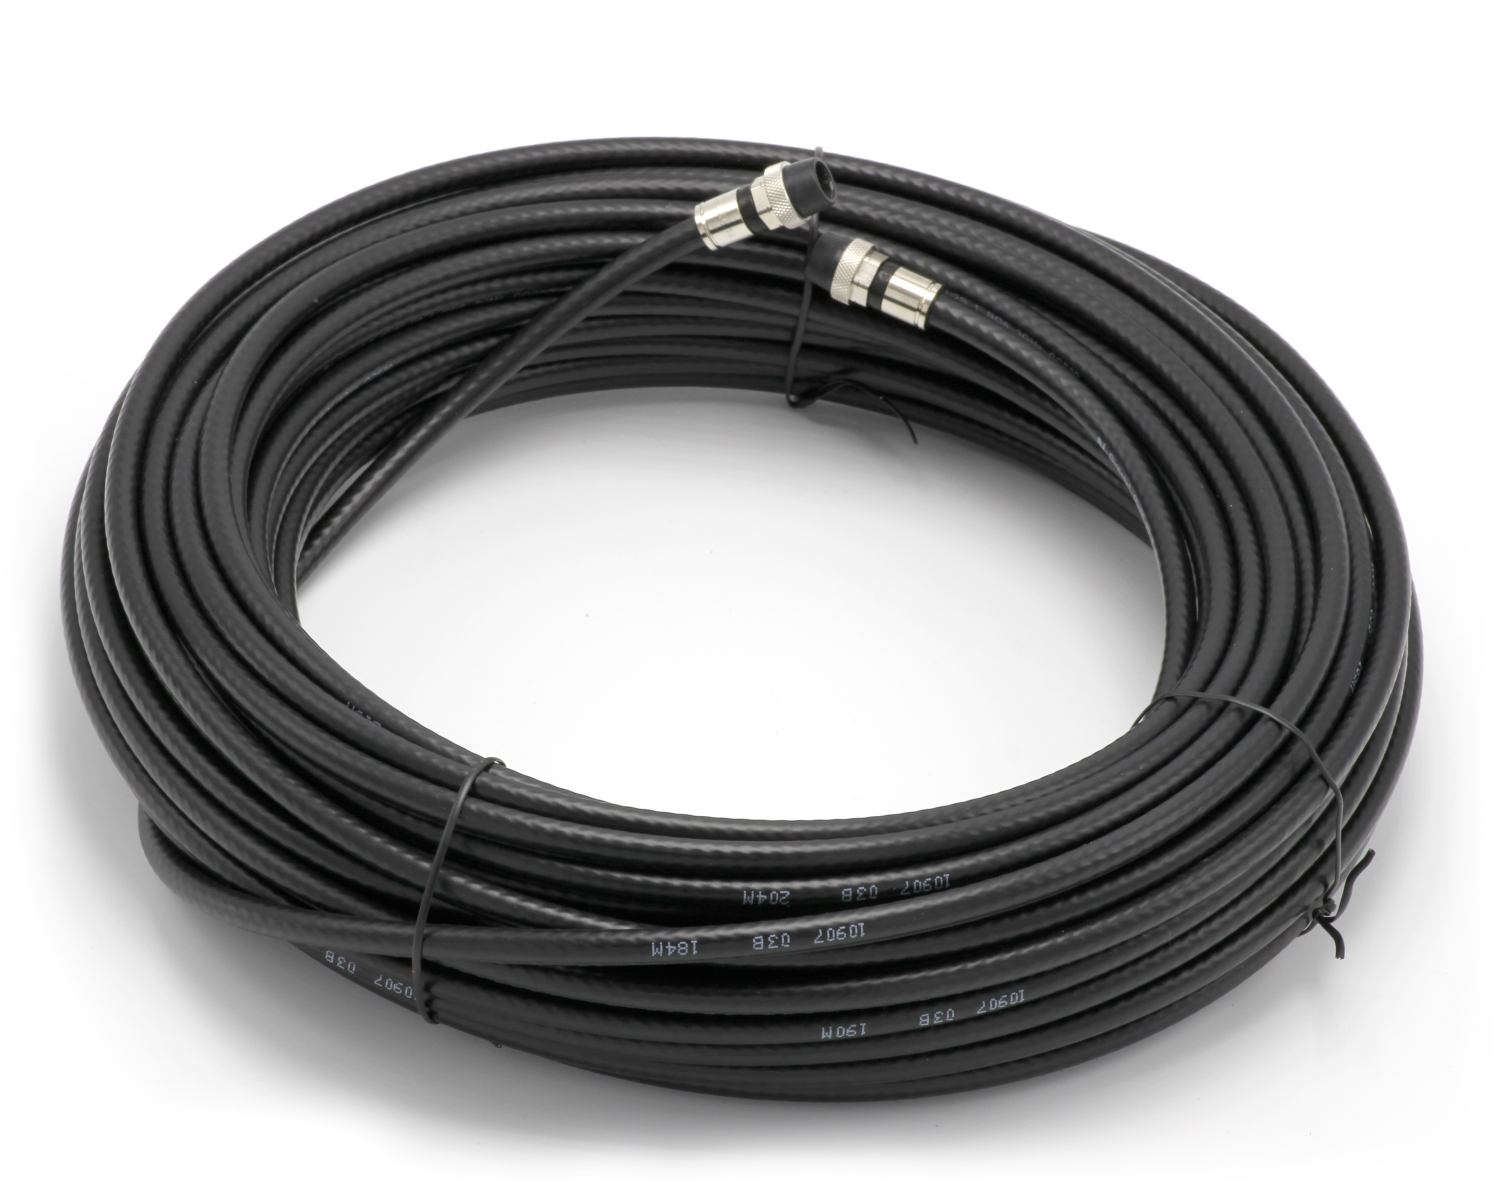 100 Feet Black Rg6 Coaxial Cable Coax Made In The Usa